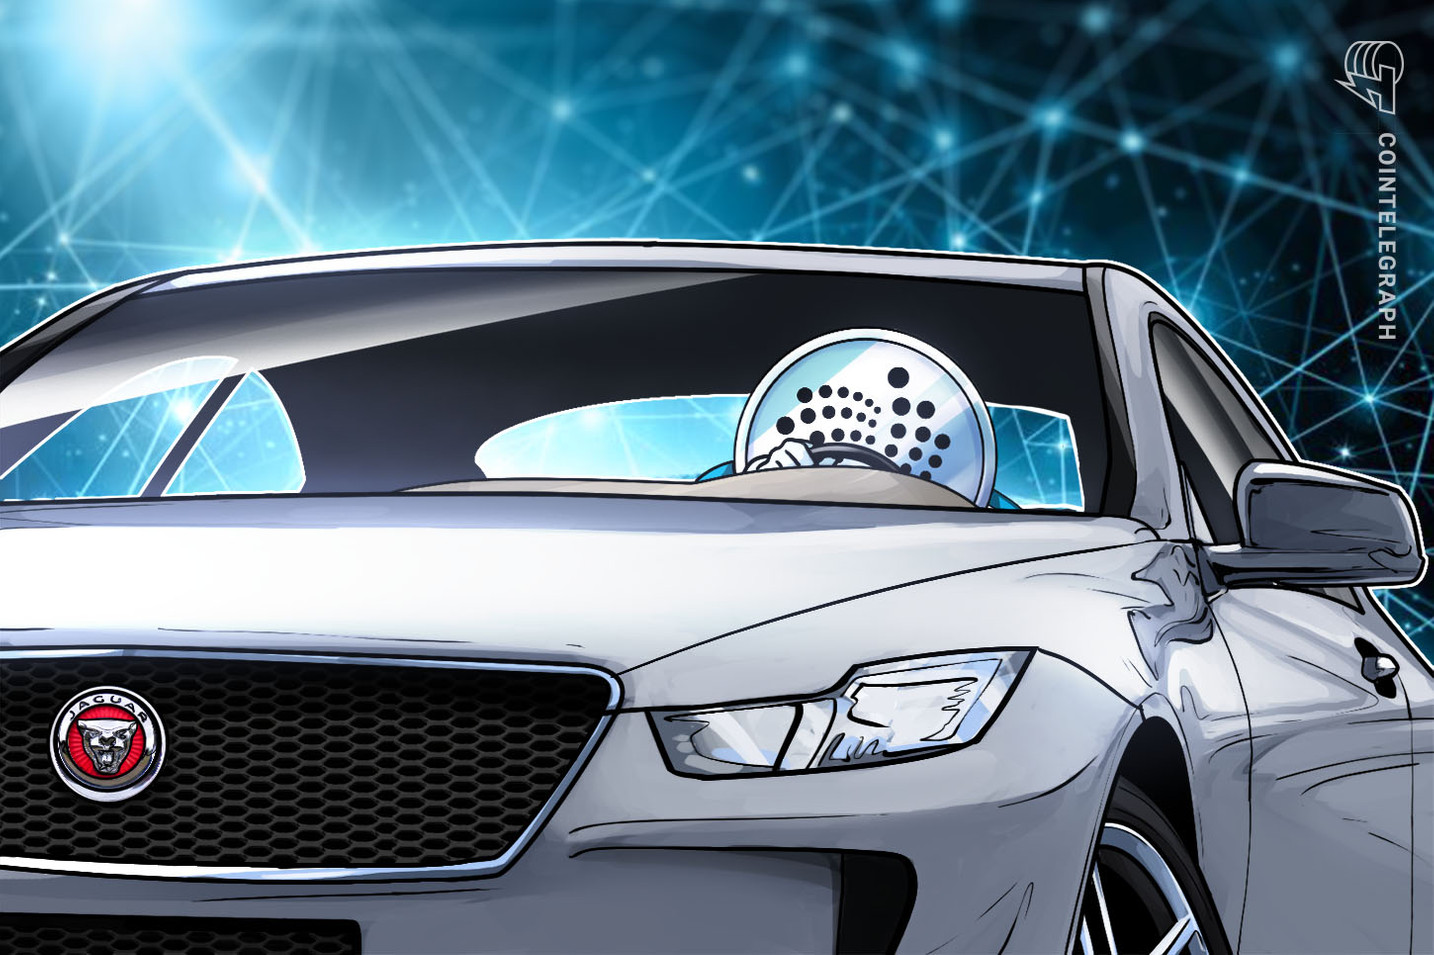 Iota Partners With Jaguar Land Rover on Crypto Rewards Program, Price Jumps 20%